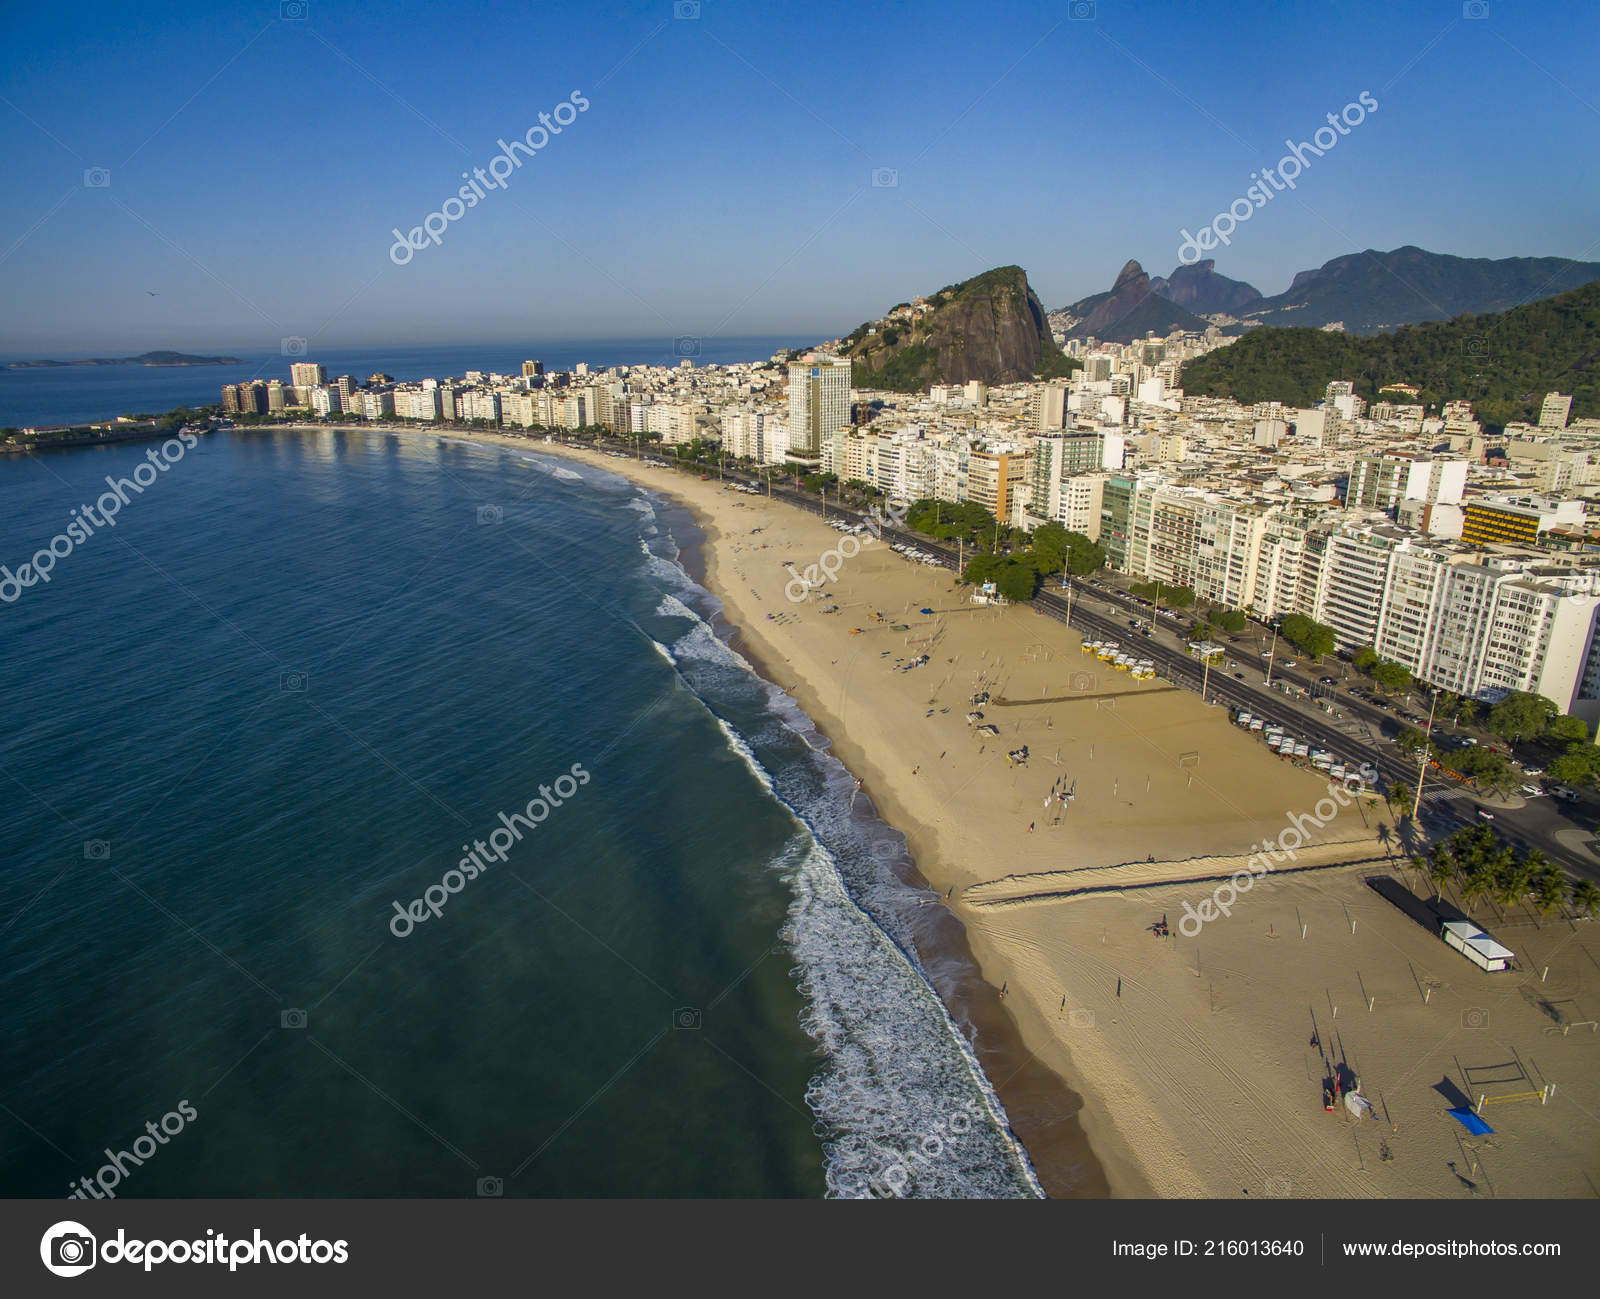 Copacabana, The (Images of America)